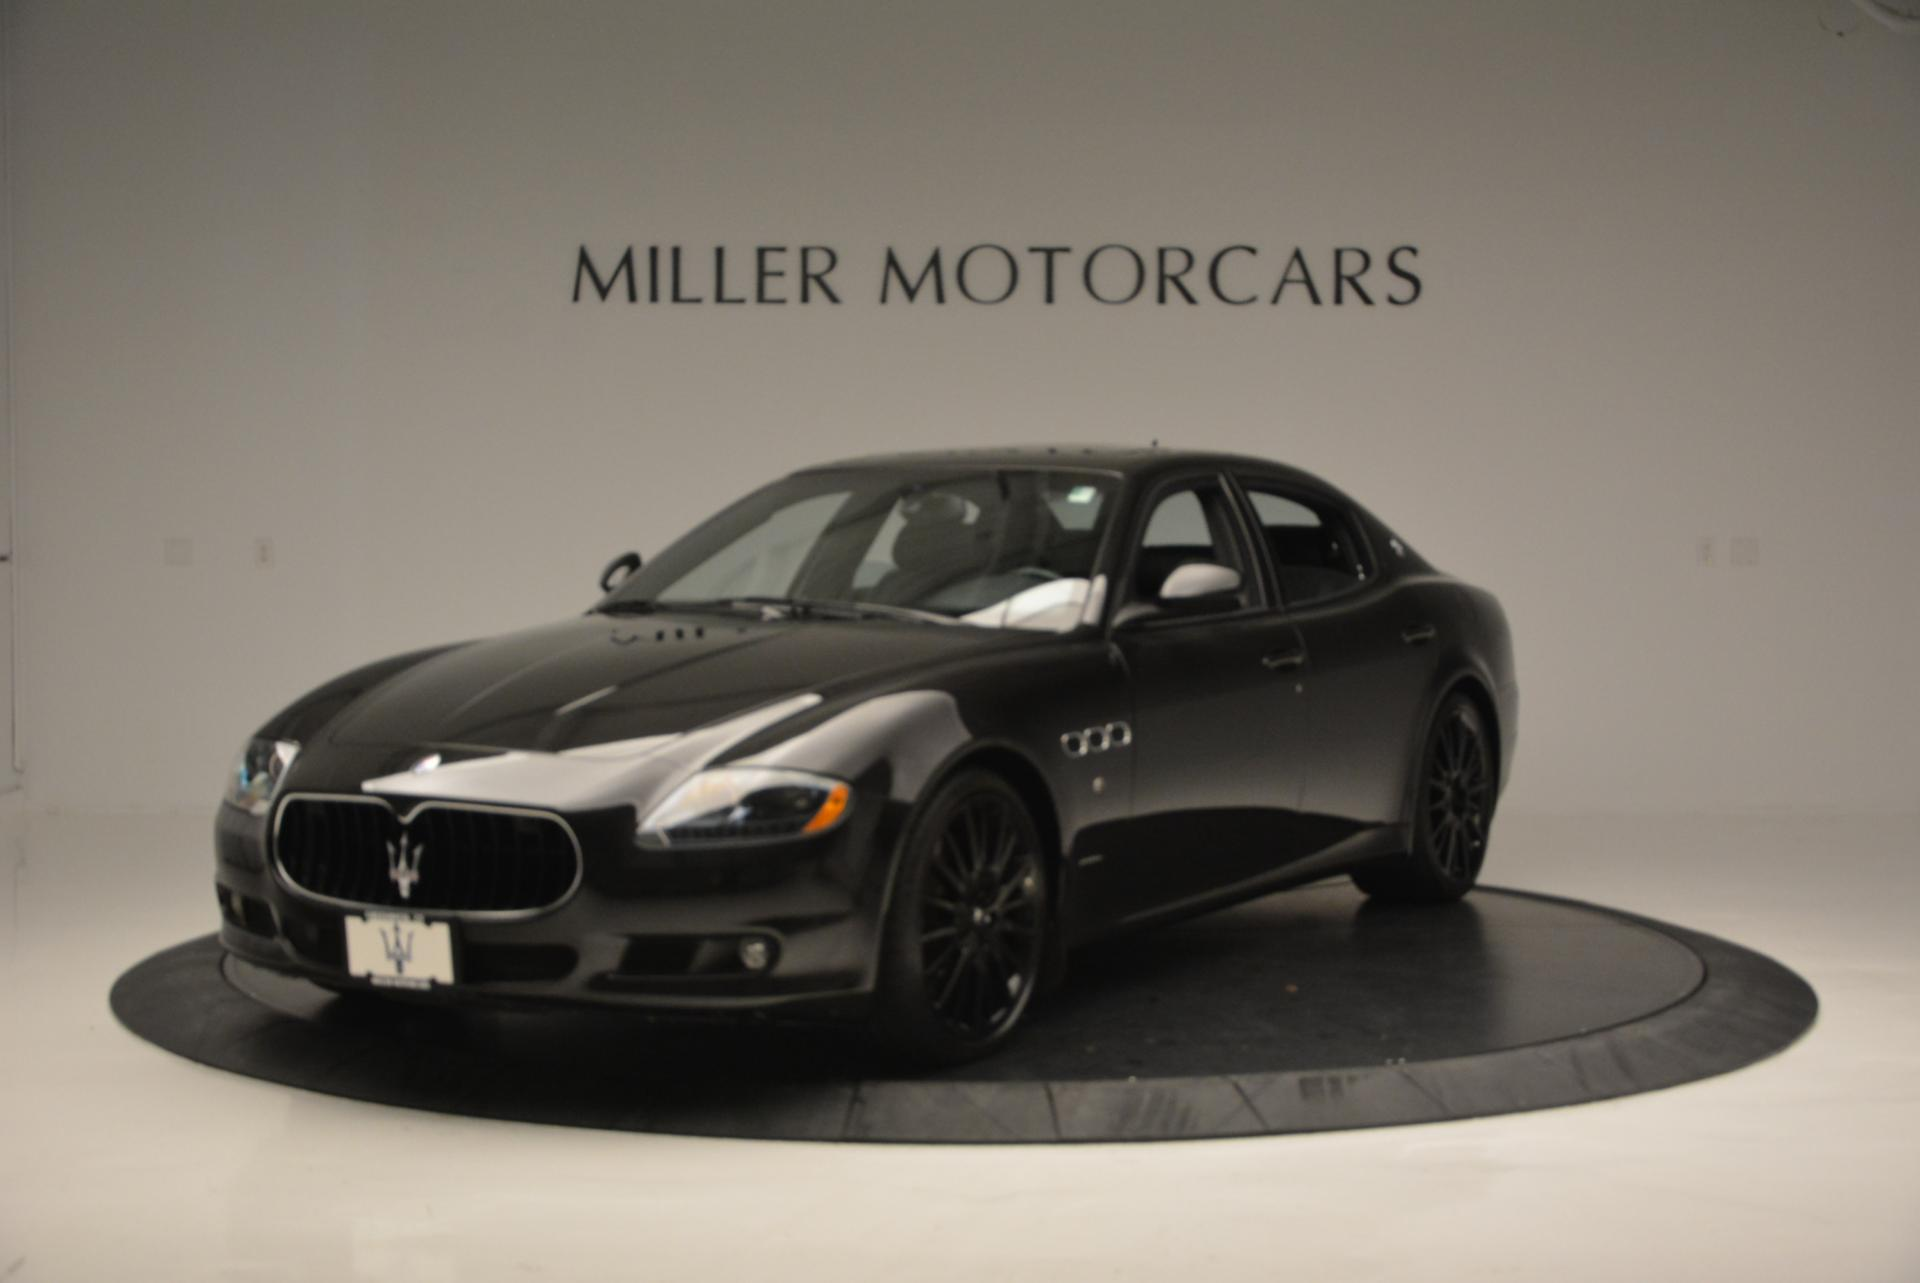 Used 2011 Maserati Quattroporte Sport GT S for sale Sold at Bentley Greenwich in Greenwich CT 06830 1